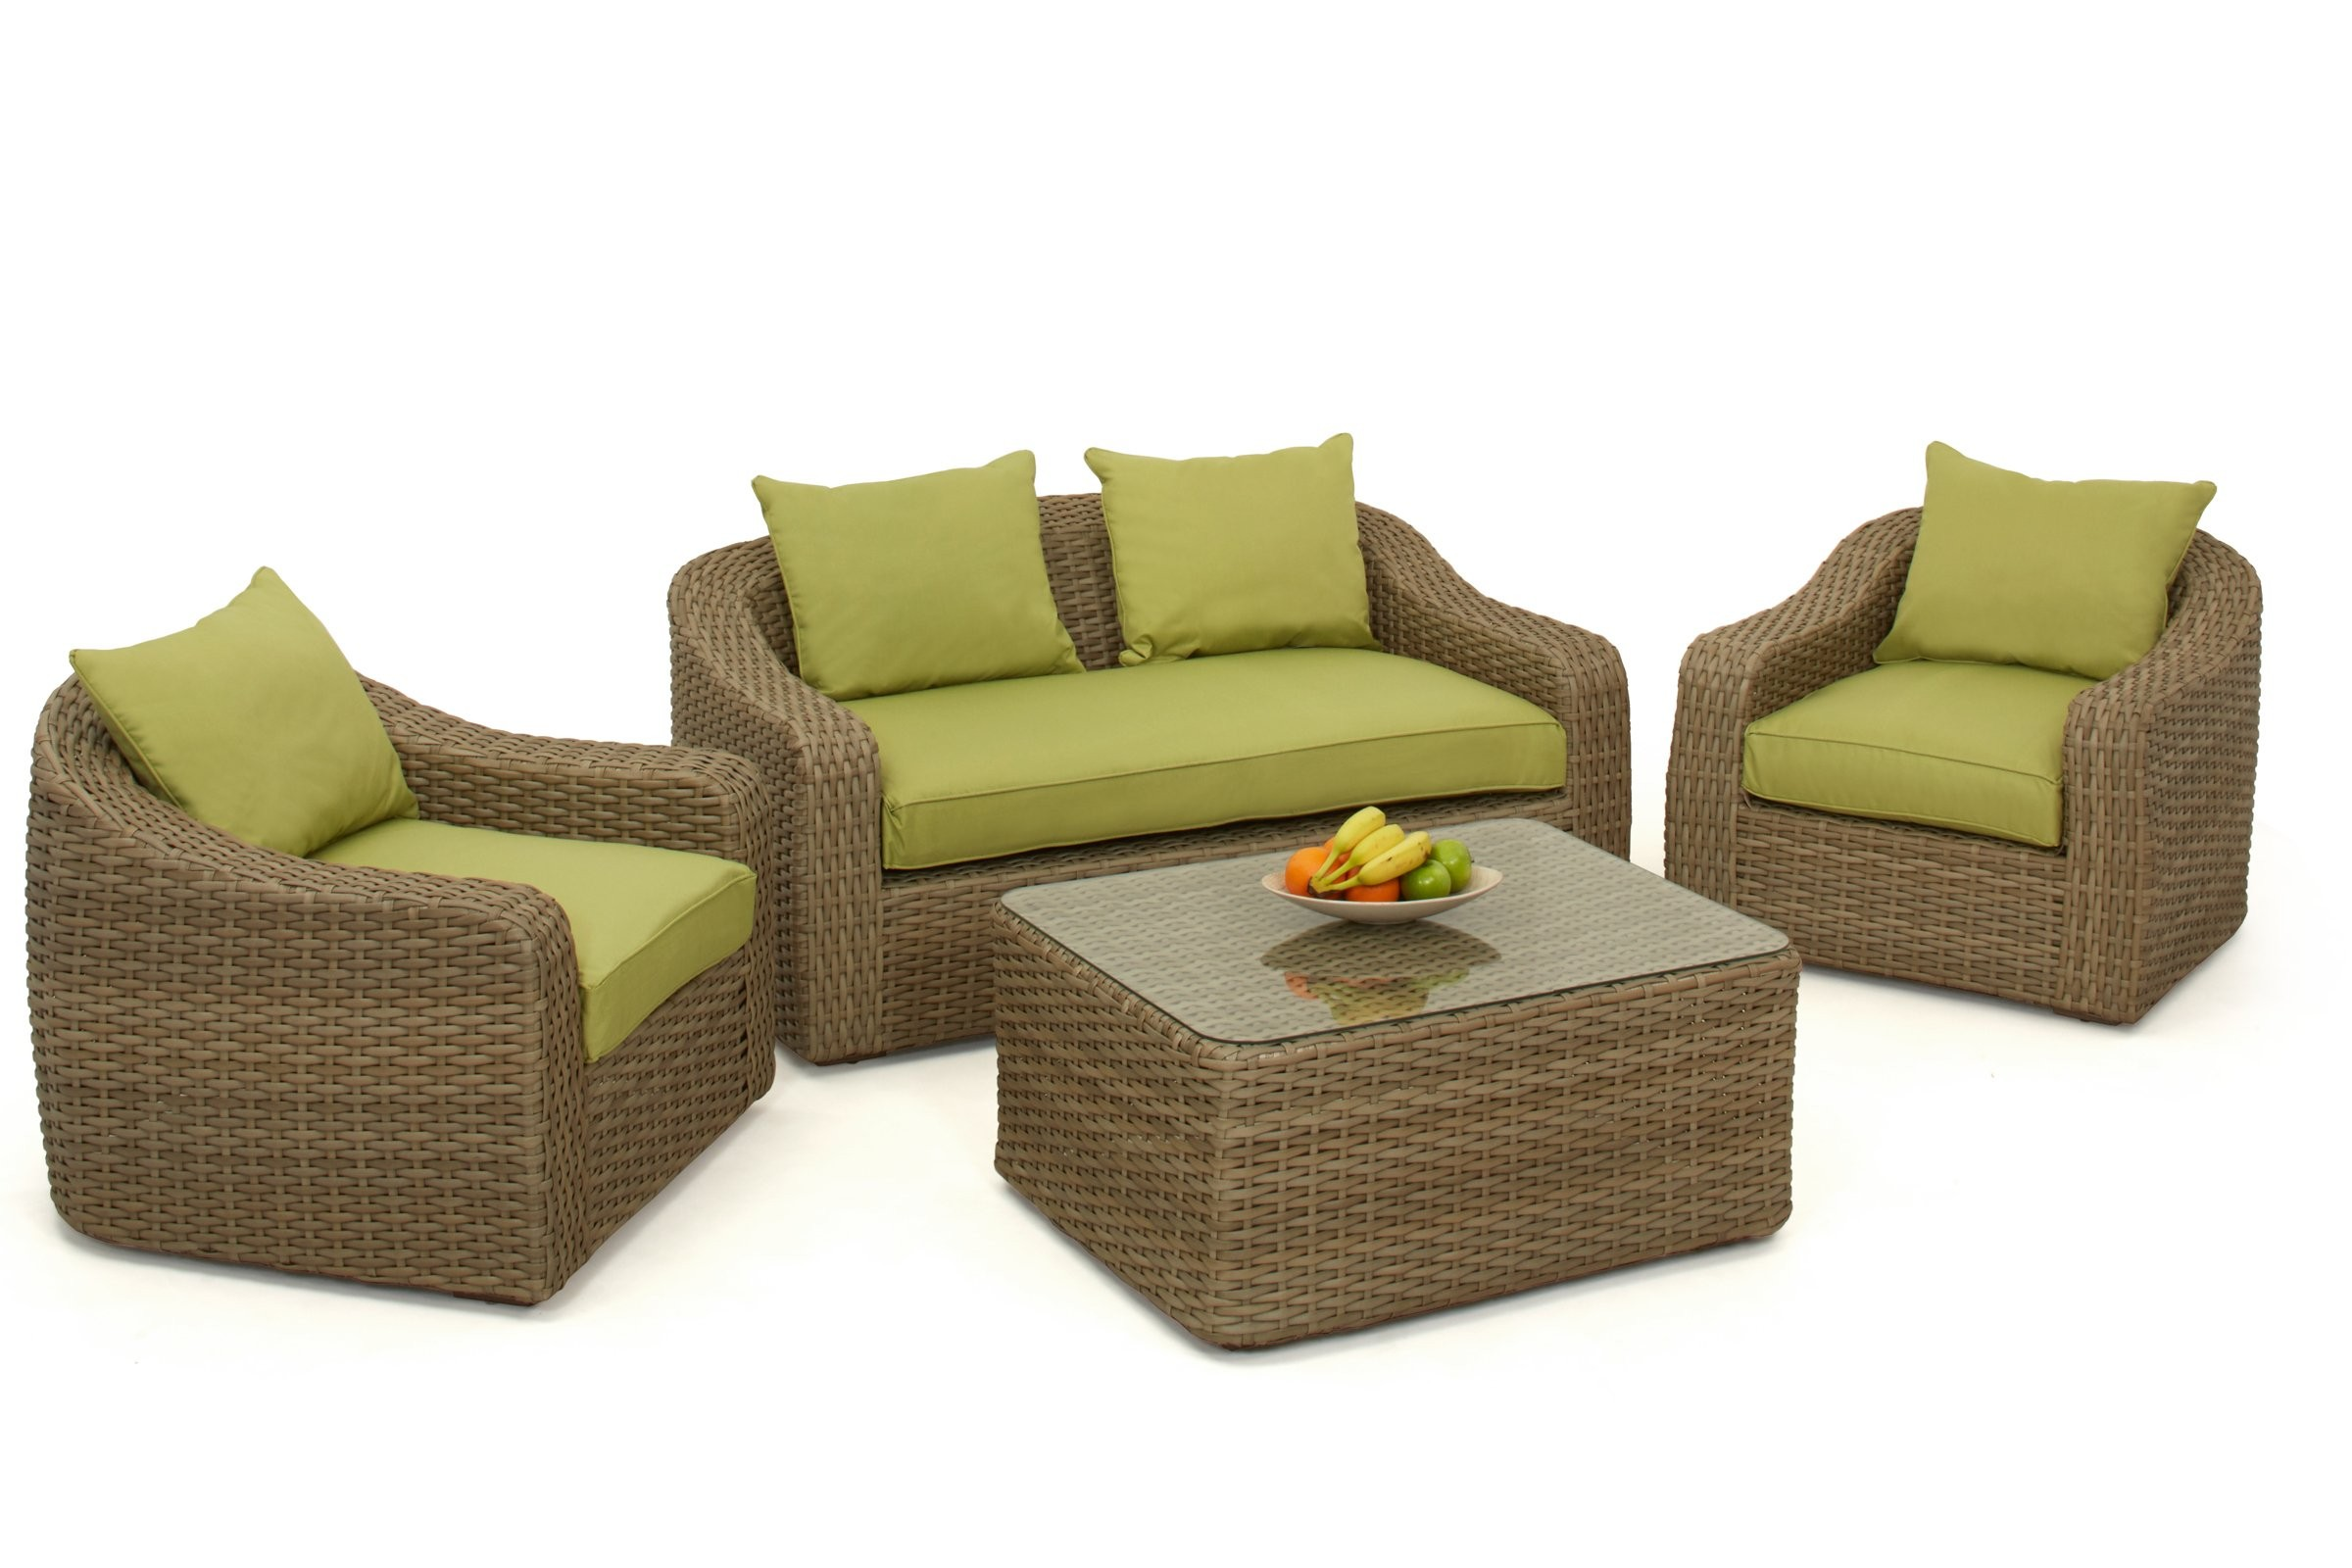 maze rattan natural milan corner sofa set green cushions avenue pearl leather rounded | ...